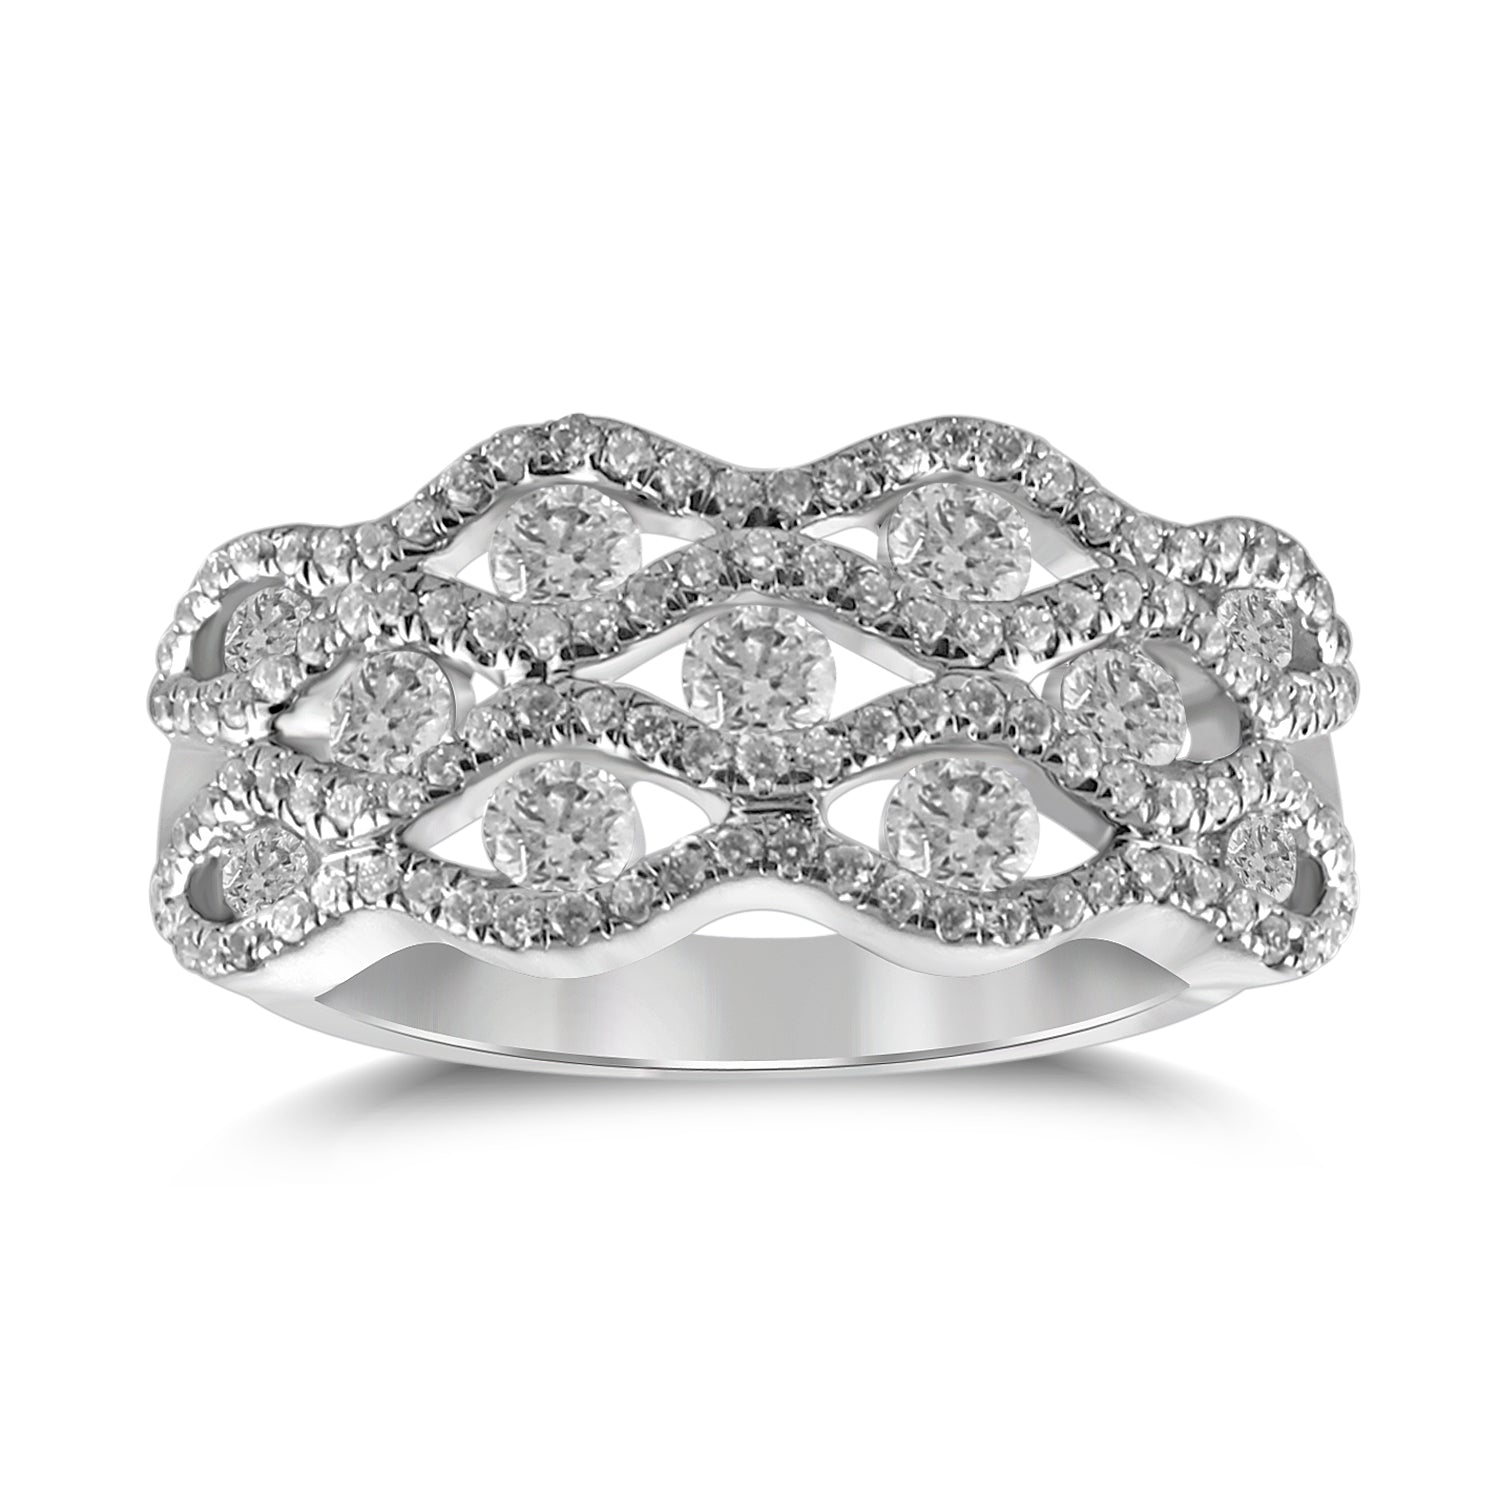 Gemma - Dome Top Diamond & Gemstone Band